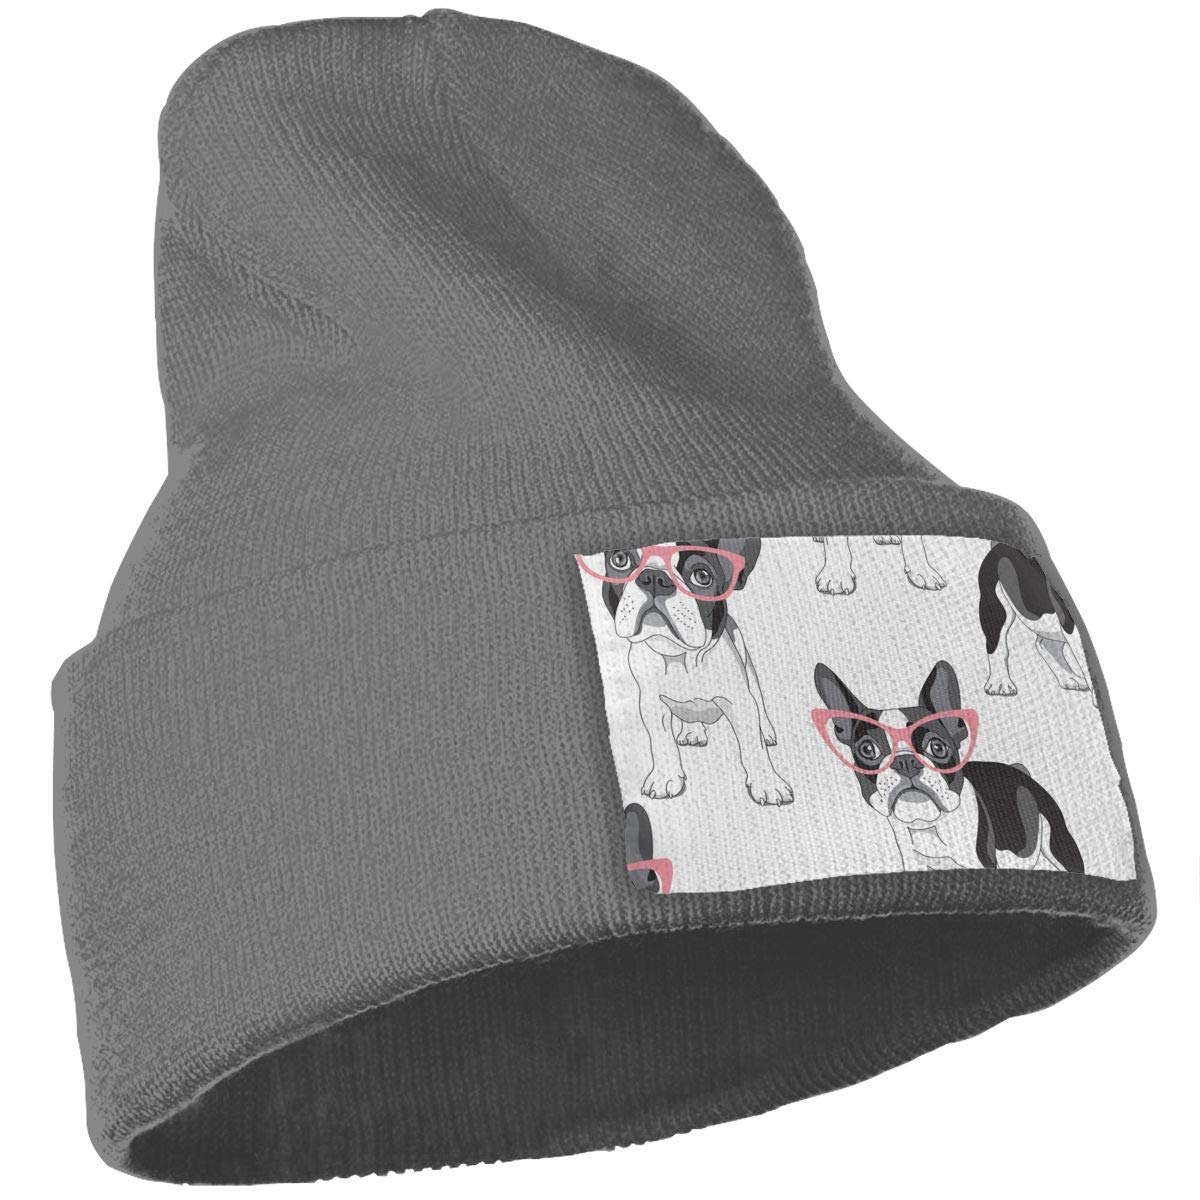 French Bulldog in A Pink Glasses Skull Caps Women and Men Winter Warm Stretchy Knitting Beanie Hats